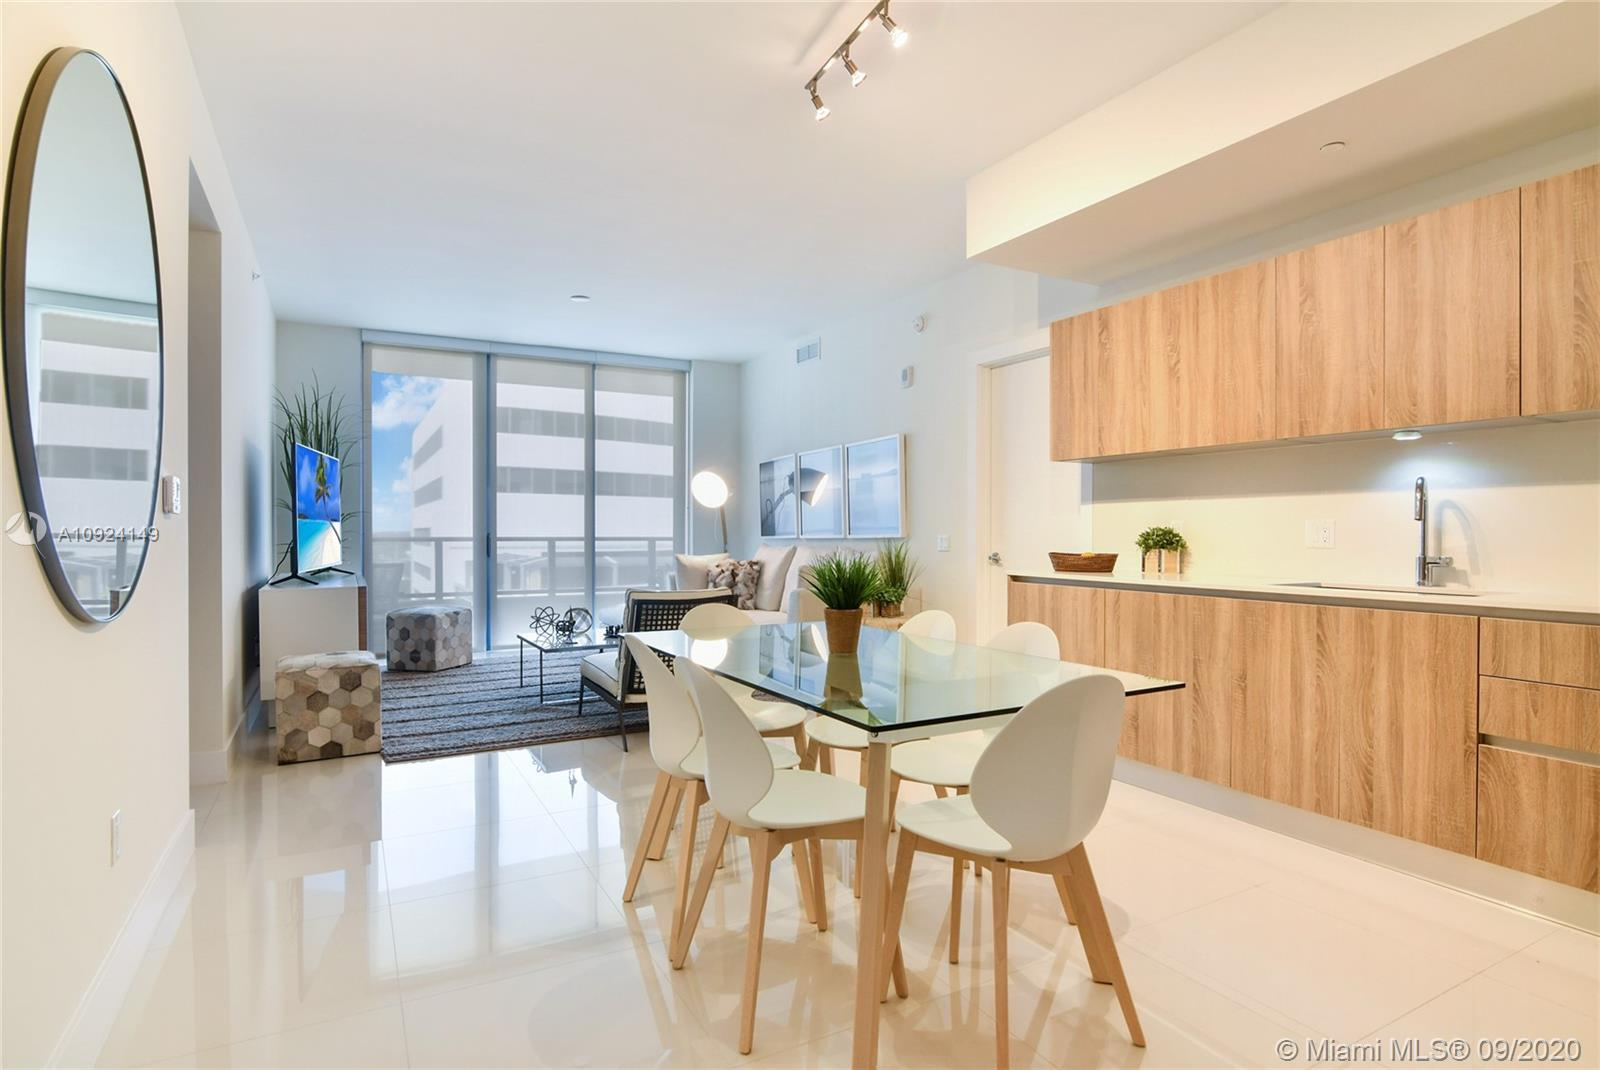 Parksquare Condo unit 804. Brand new 2018 at Aventura Florida,  and  walking distance of the country